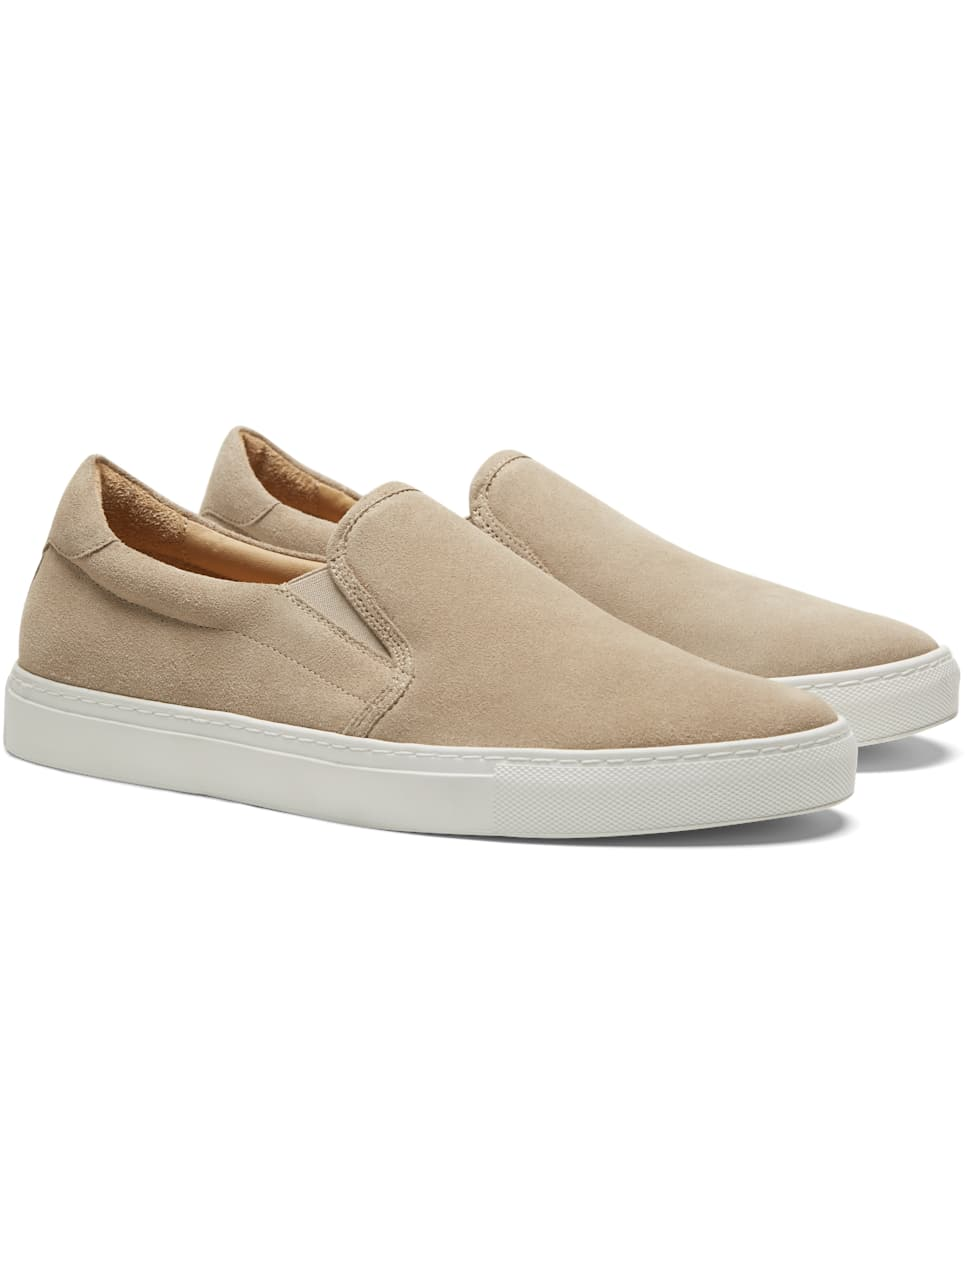 Sand Slip Ons by Suitsupply